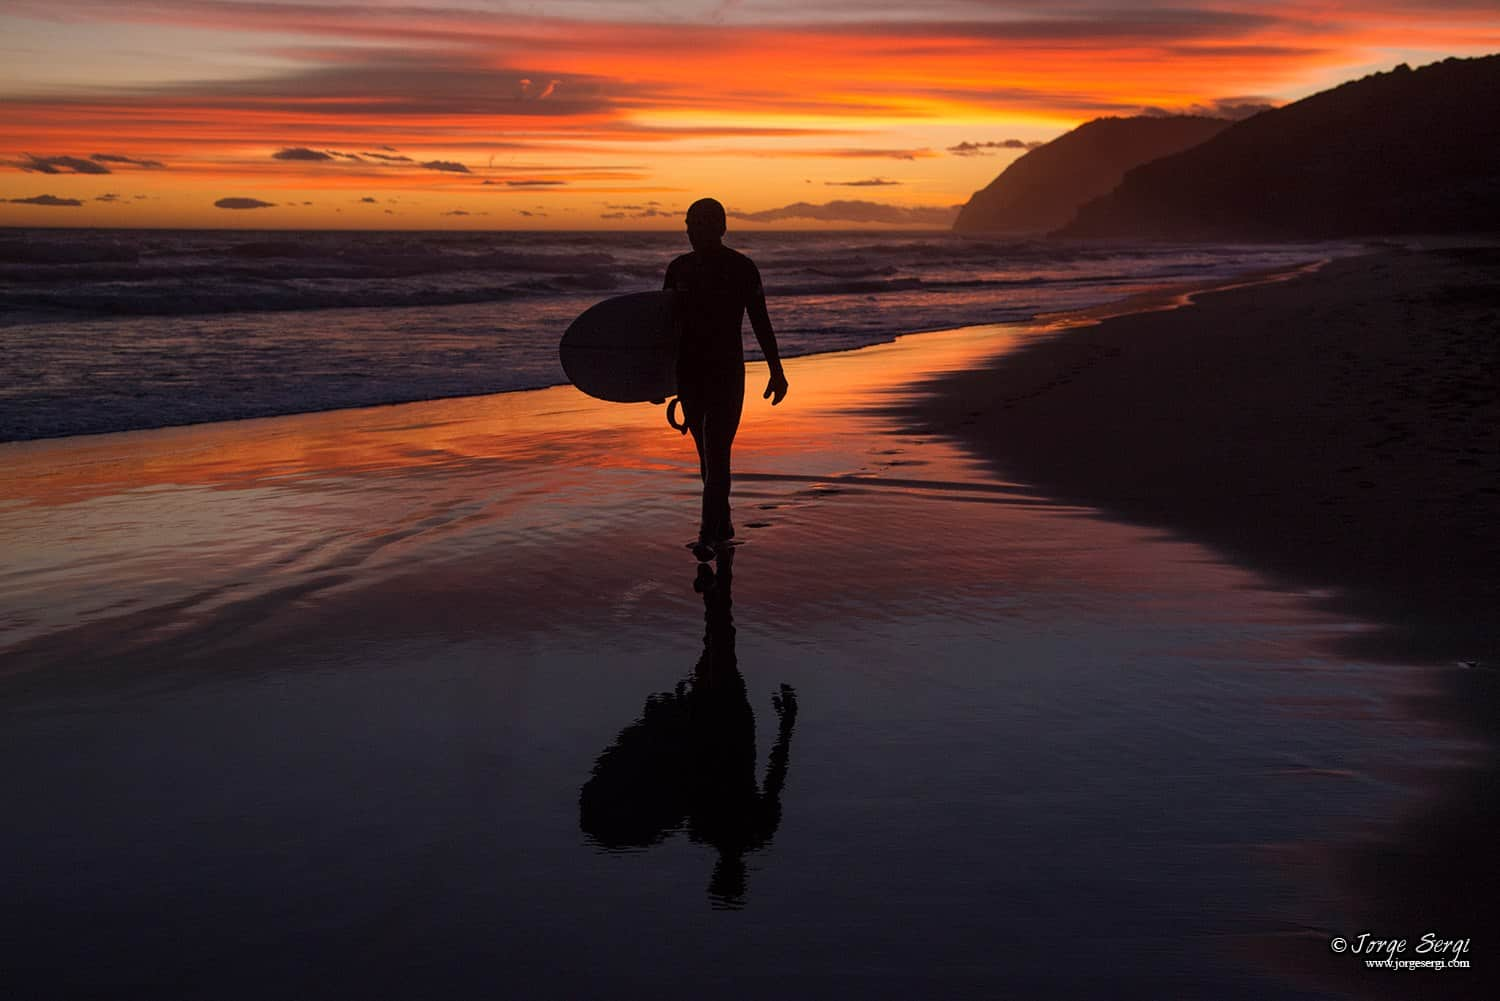 Surfing in Calblanque - Photography: Jorge Sergi